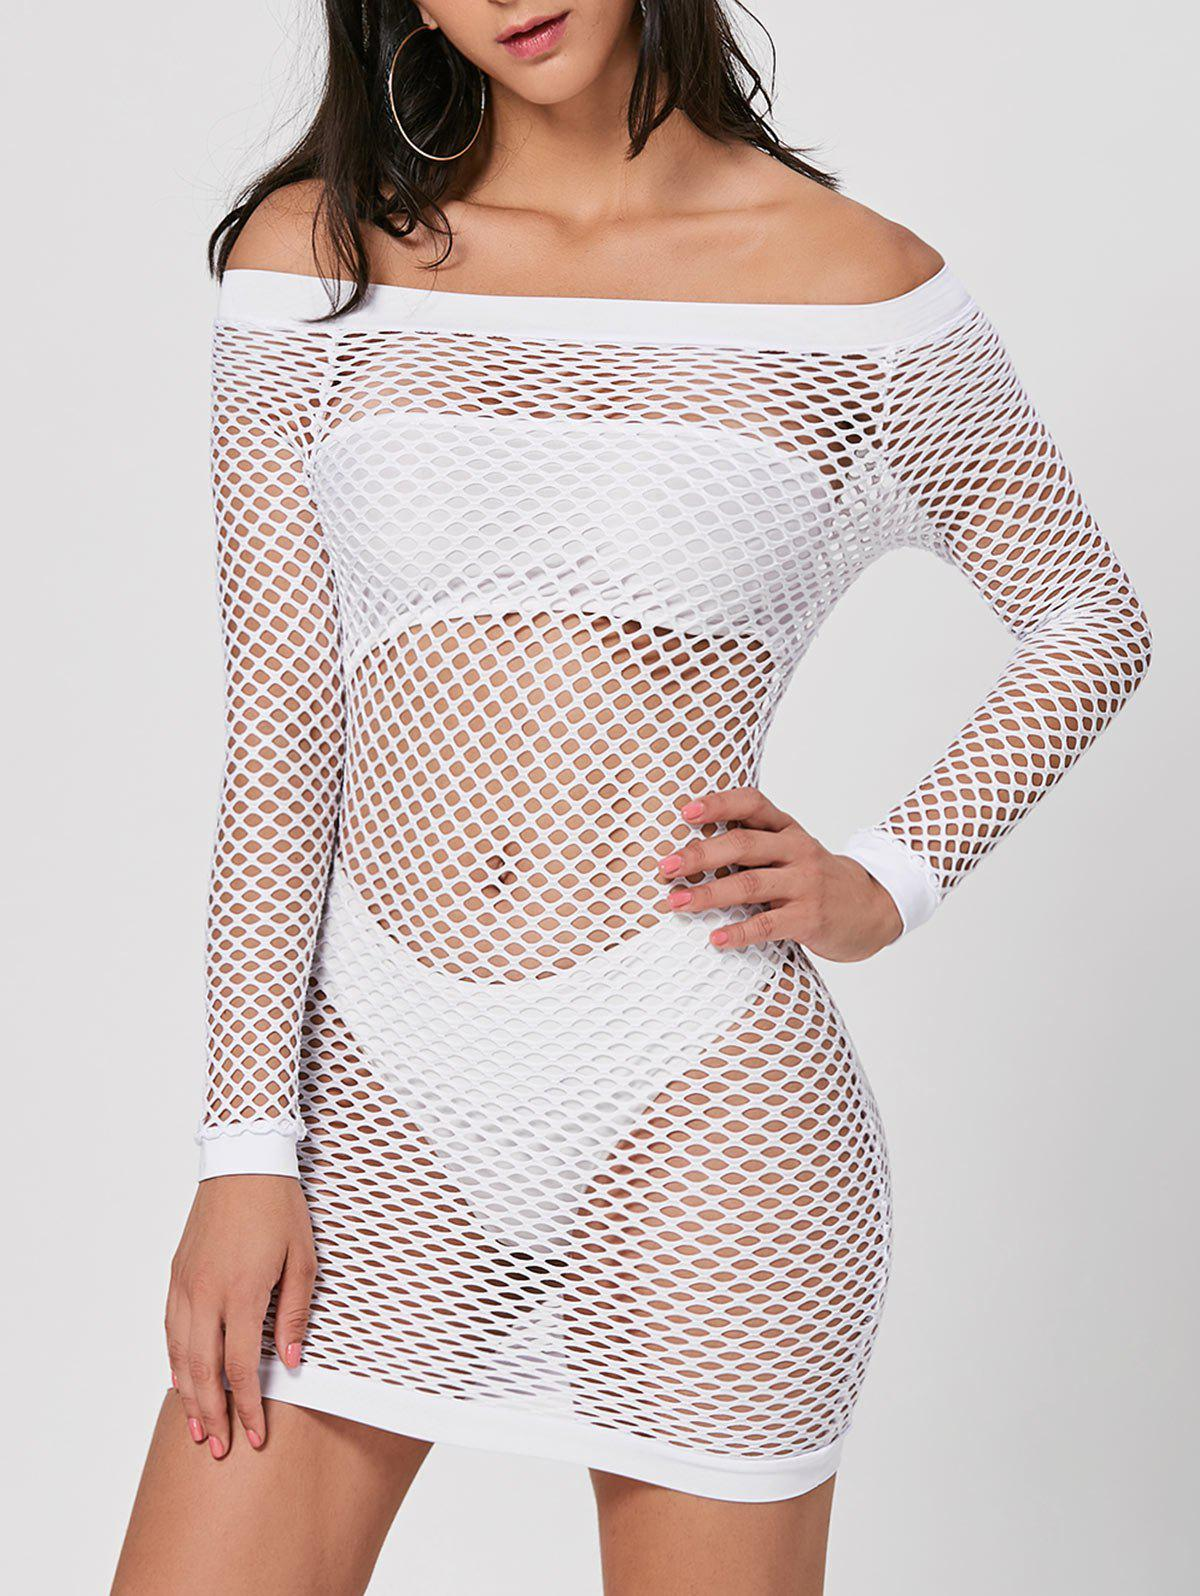 Fancy Long Sleeve Off The Shoulder Sheer Hot Dress